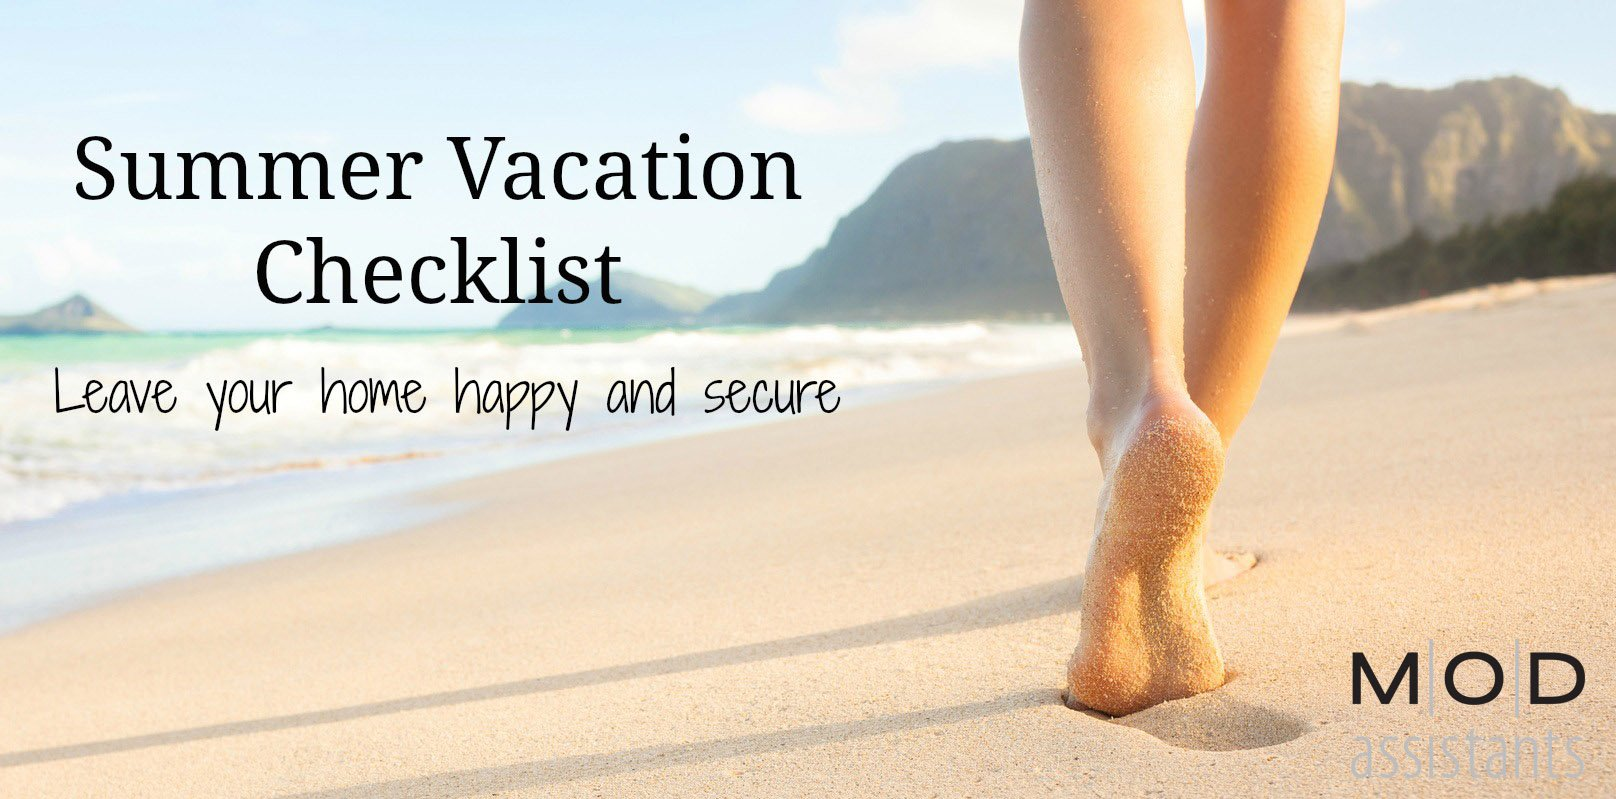 summer vacation checklist mod personal assistants